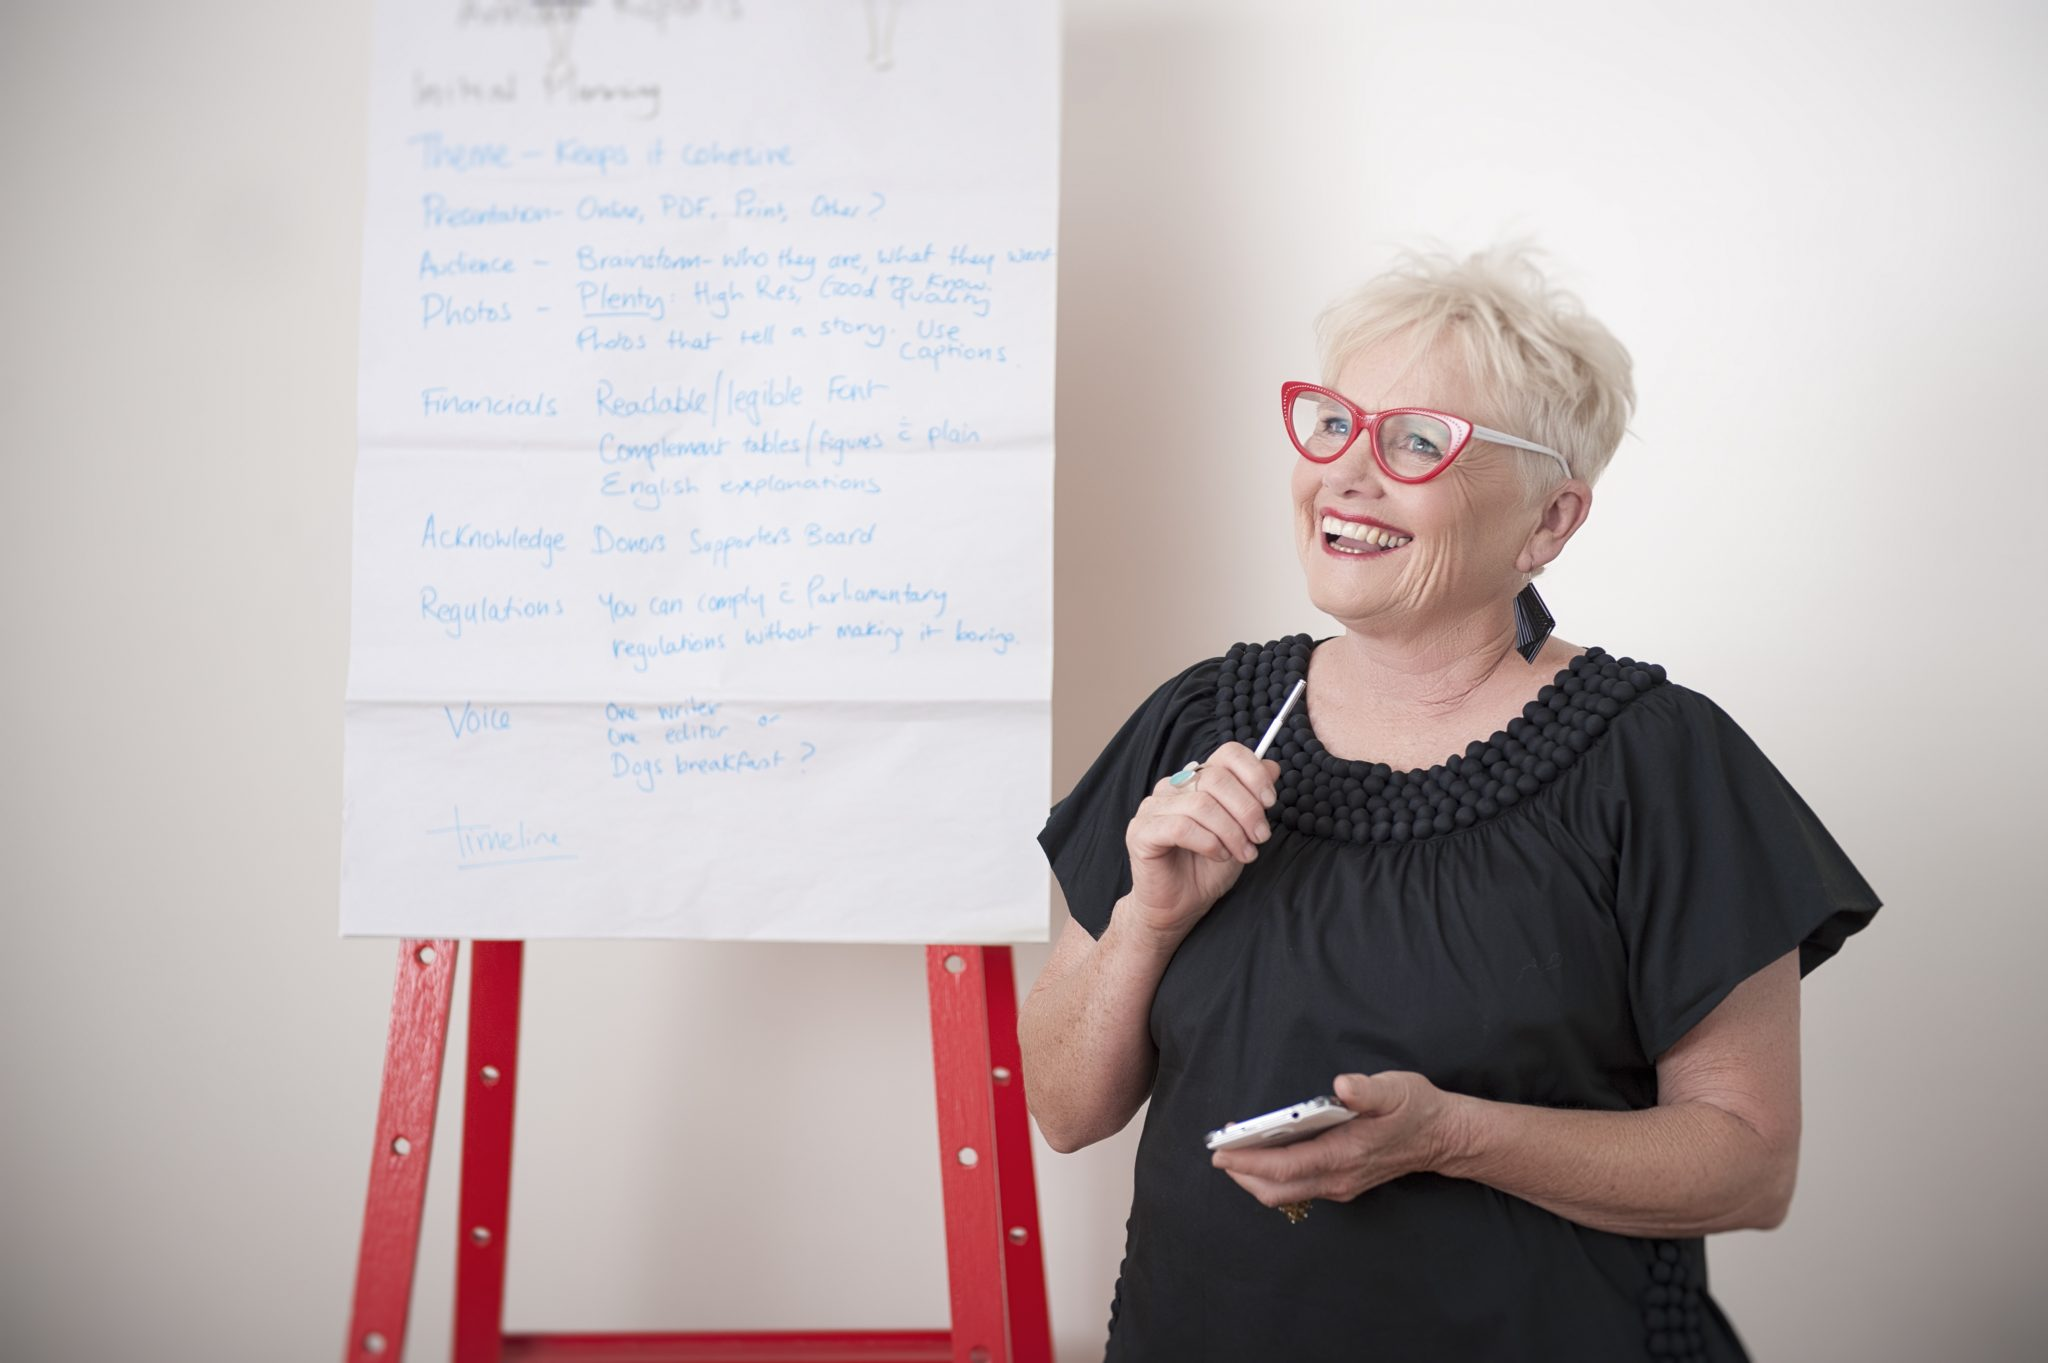 Image of Noelene Gration, an experienced marketing mentor in Daylesford, in front of a white board at a recent marketing workshop.